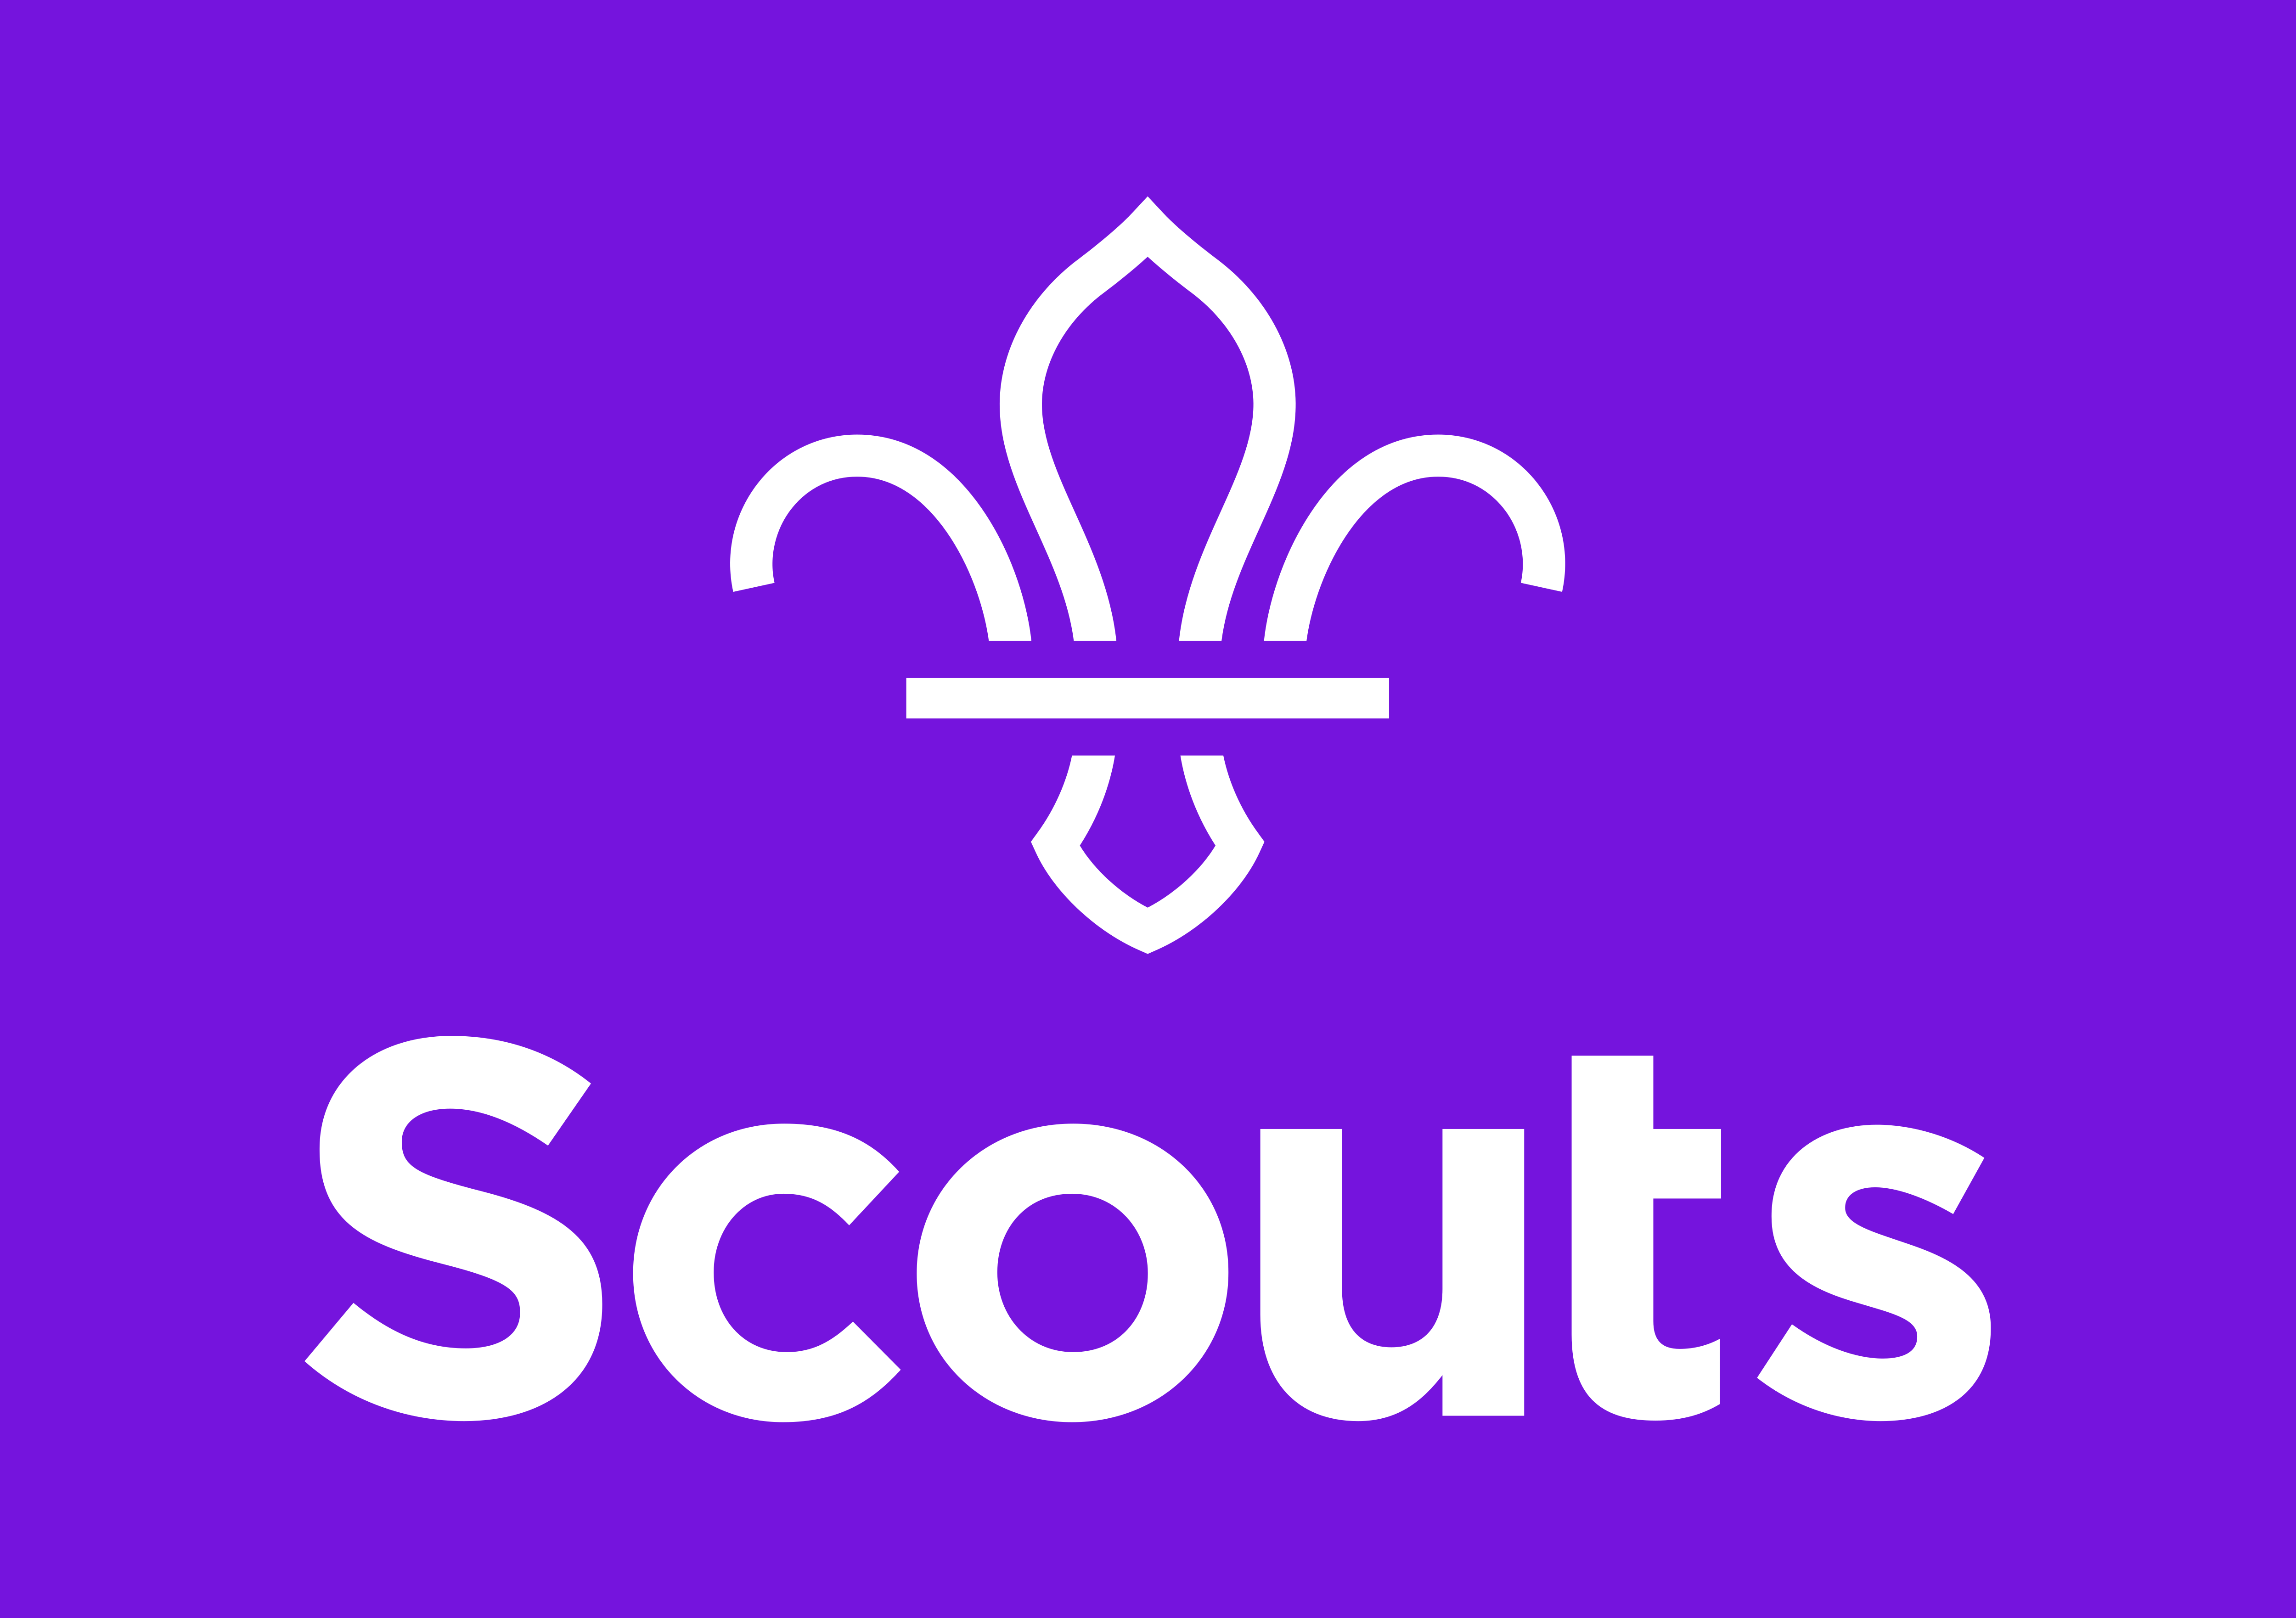 The Scout Association - Logos Download